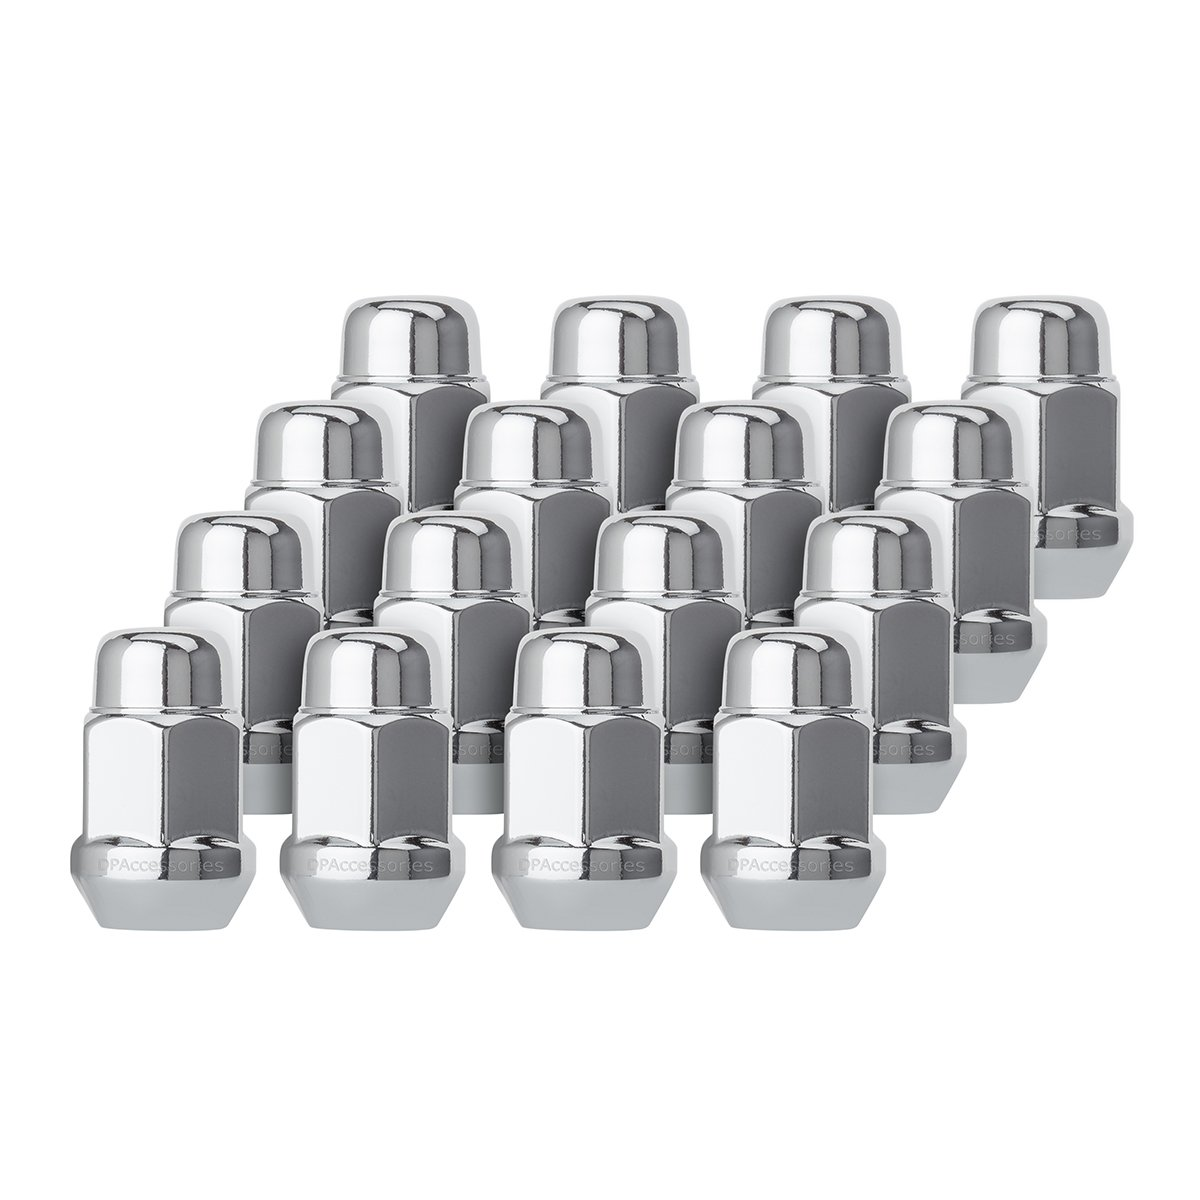 DPAccessories D3116-HT-2305/16 16 Chrome 12x1.5 Closed End Bulge Acorn Lug Nuts - Cone Seat - 19mm Hex Wheel Lug Nut